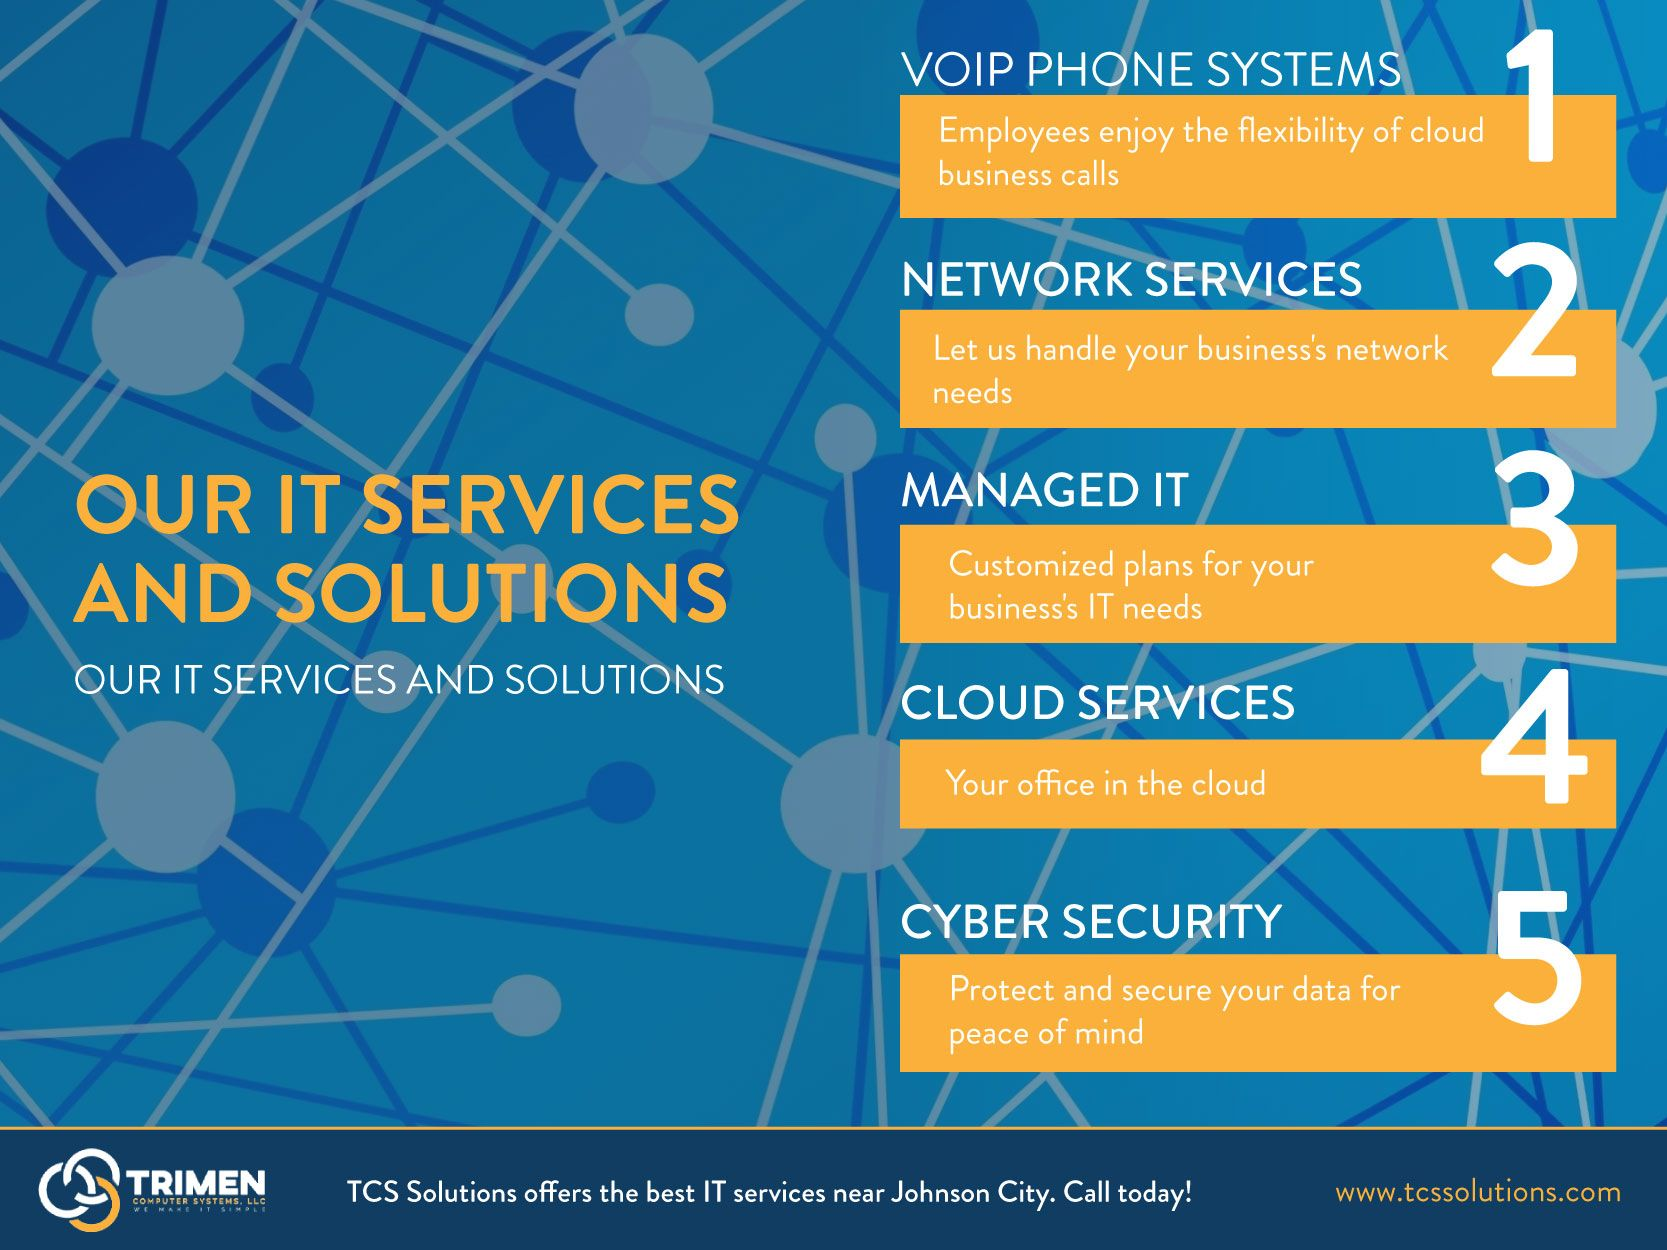 Our-IT-Services-and-Solutions-infographic.jpg